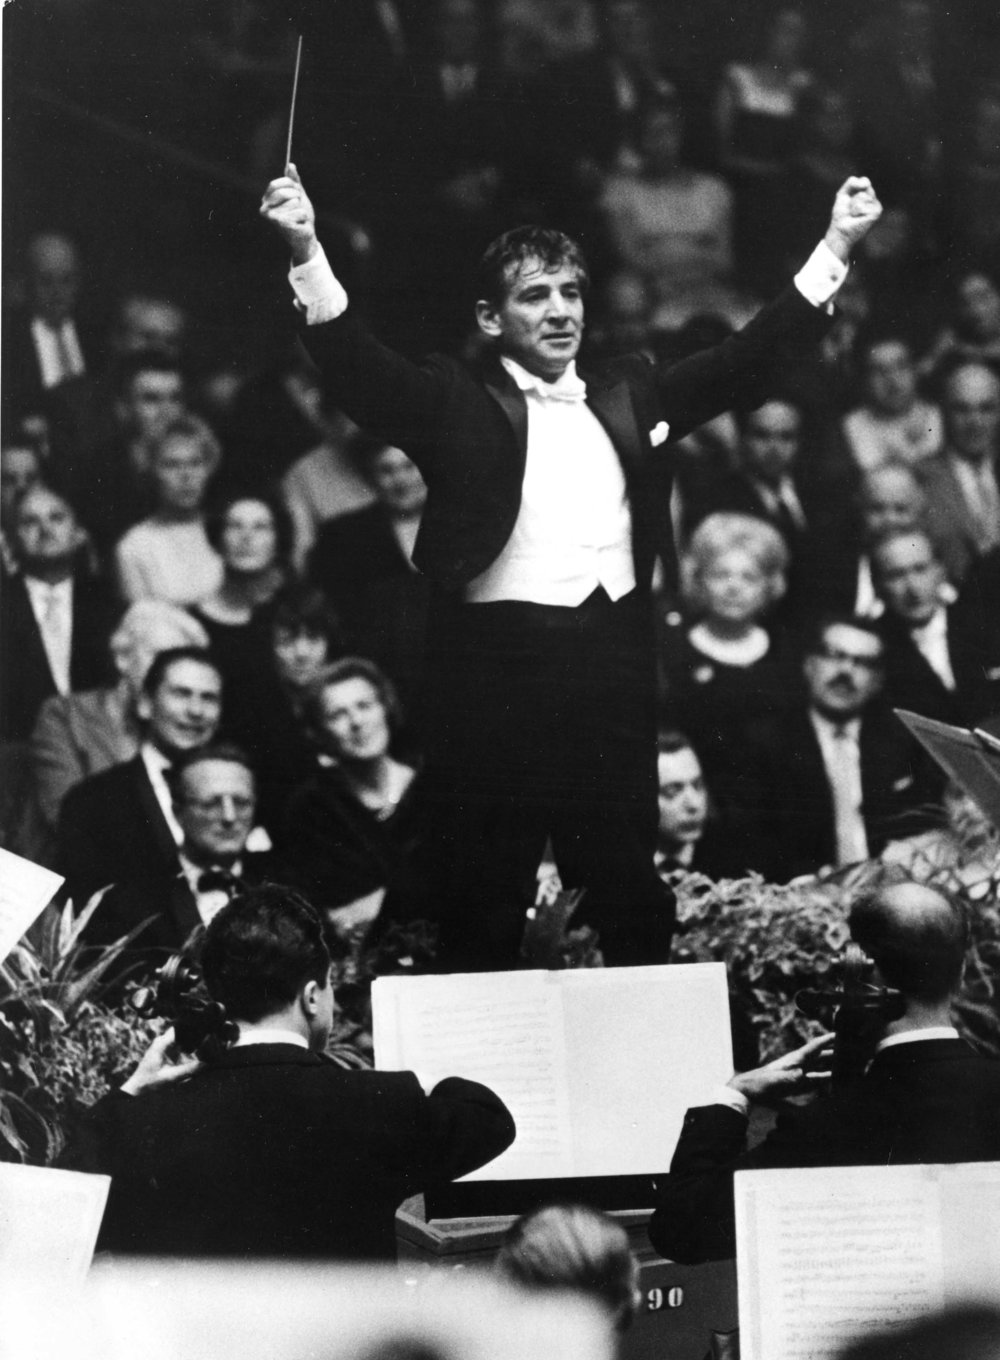 Photo Credit: New York Philharmonic Archives